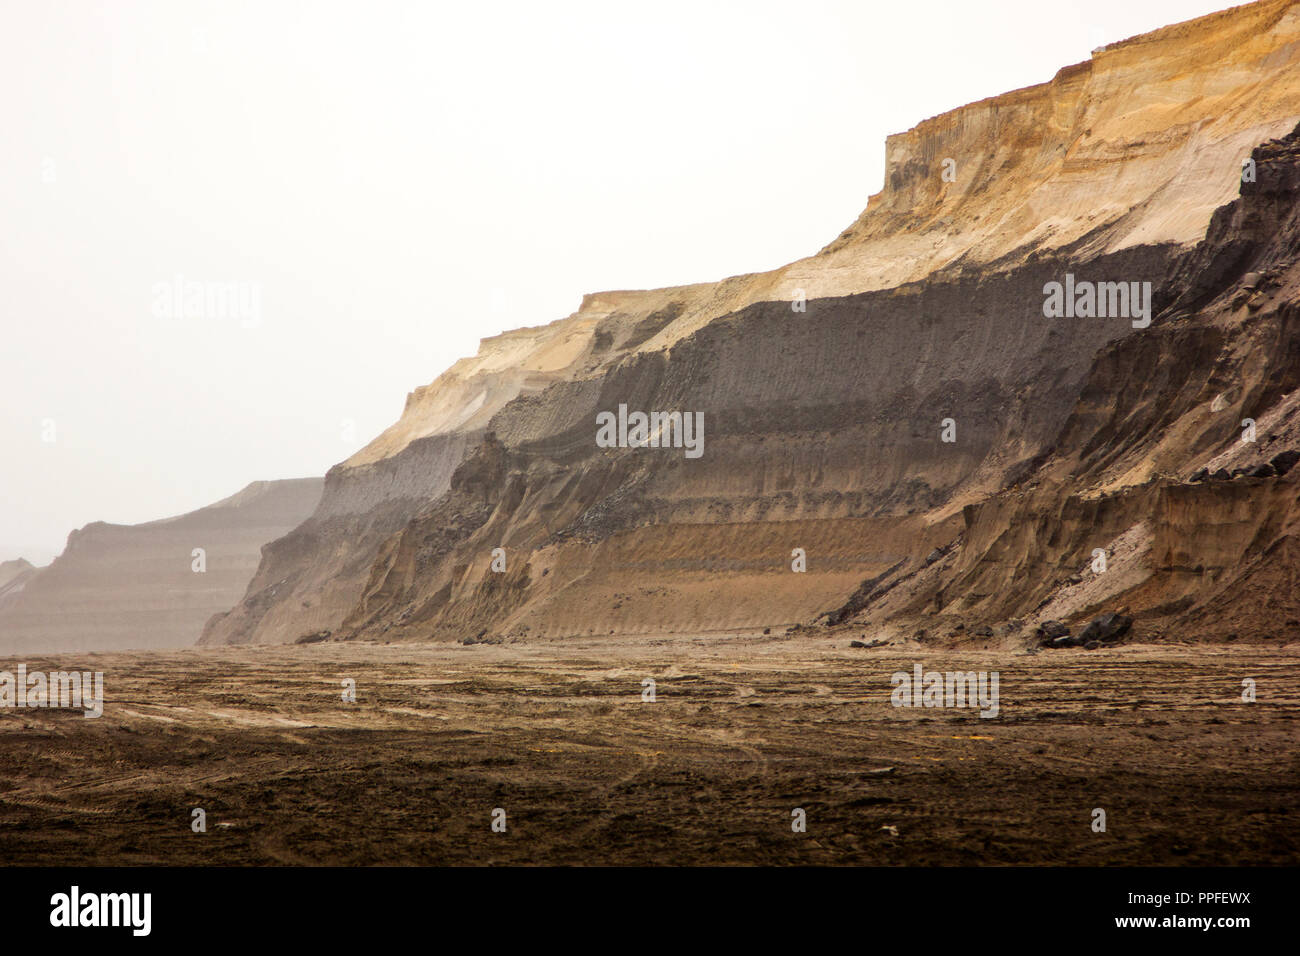 Coal opencast mining in Ruhr area, Germany - Stock Image